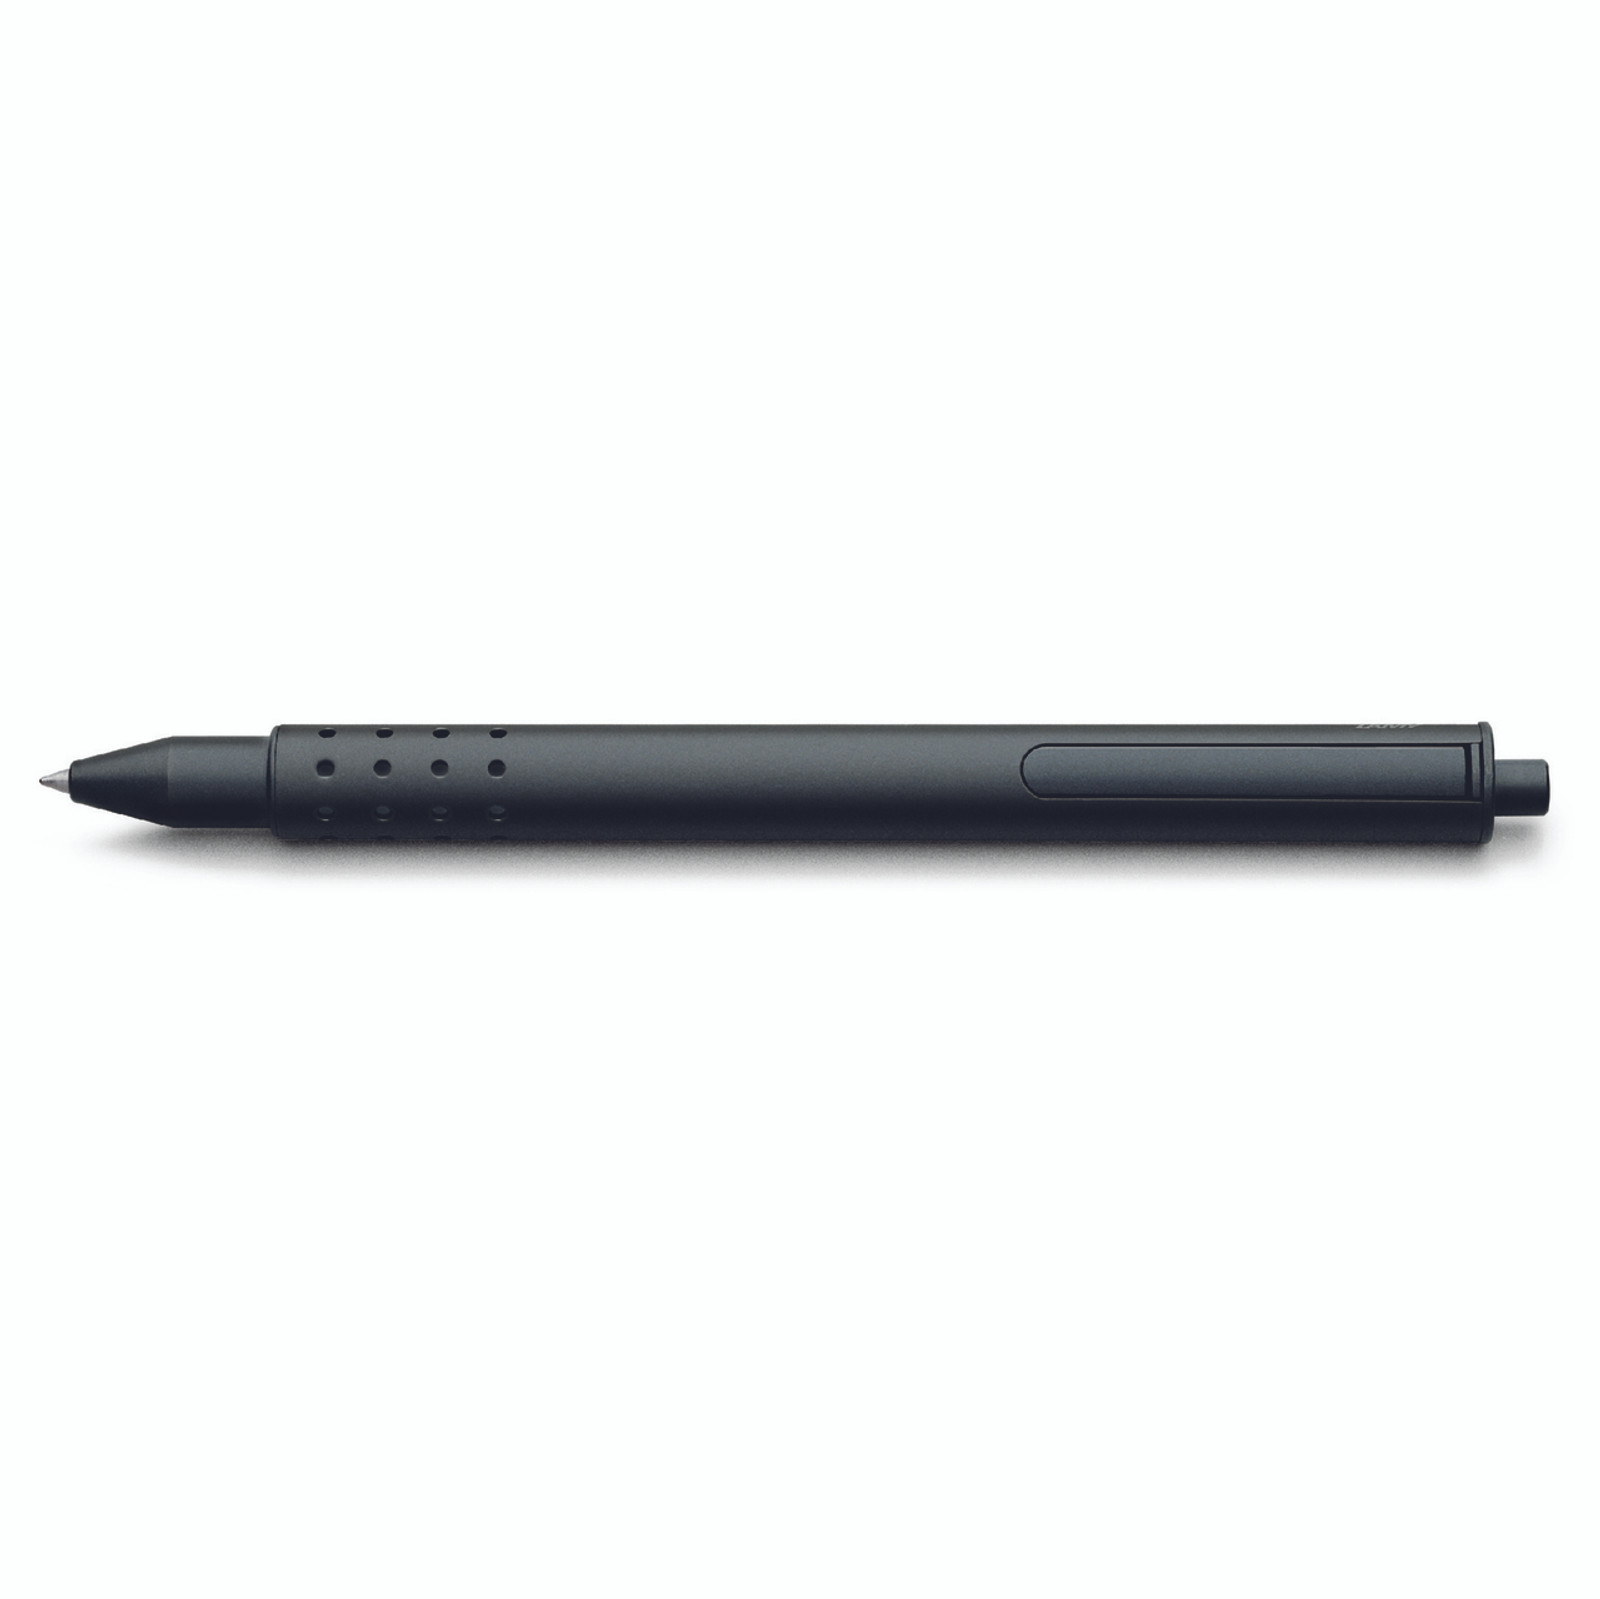 SWIFT Black Rollerball Pen